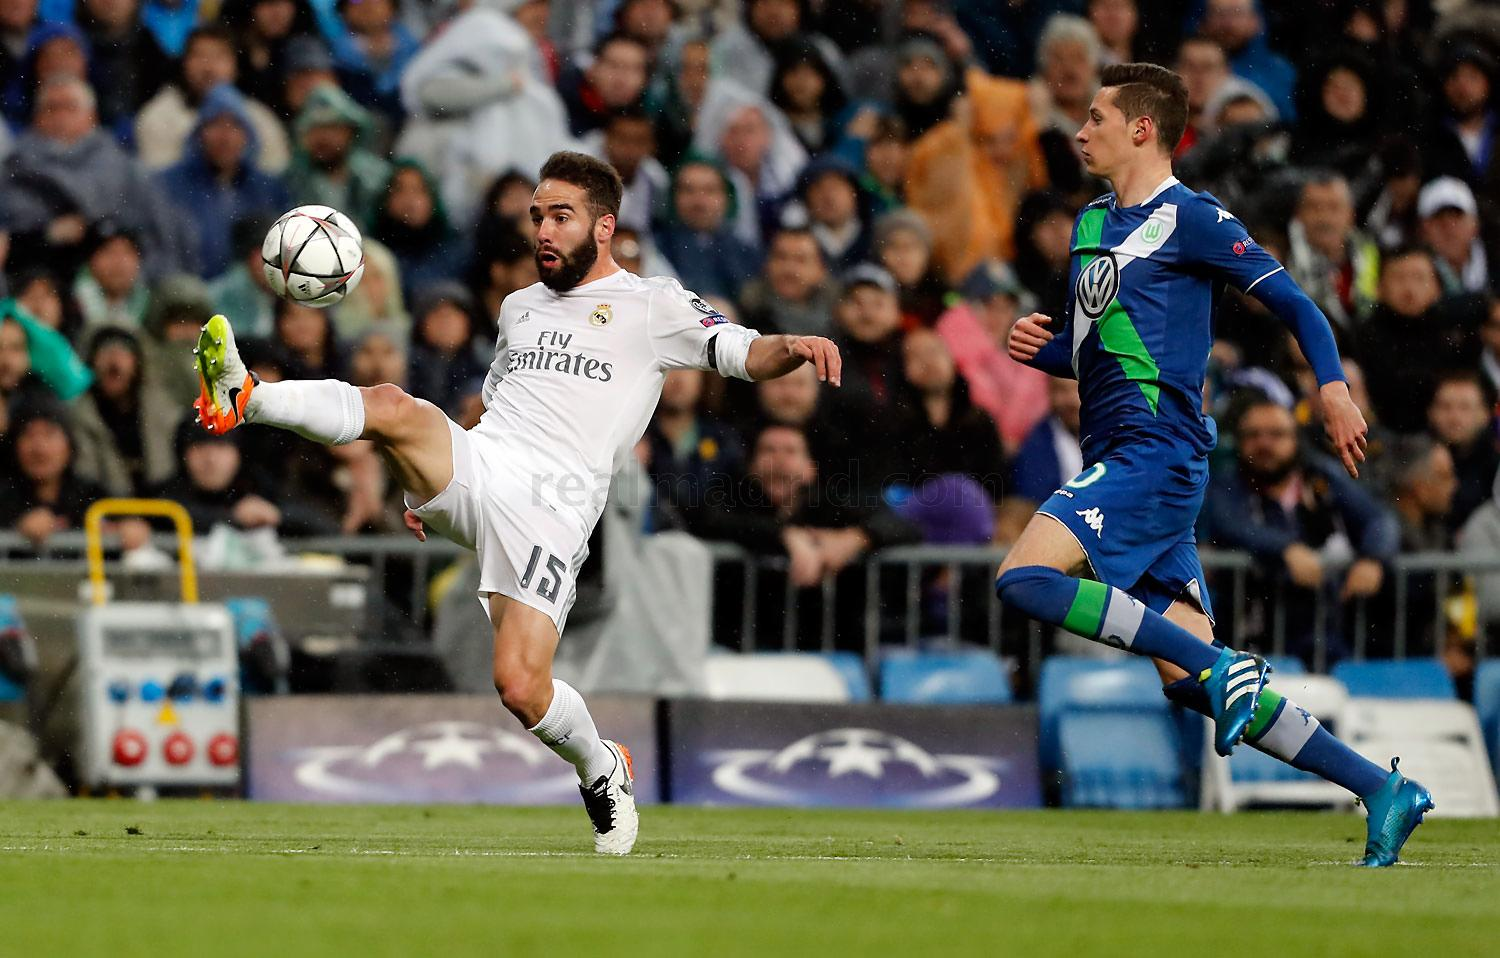 Real Madrid - Real Madrid - Wolfsburgo - 12-04-2016